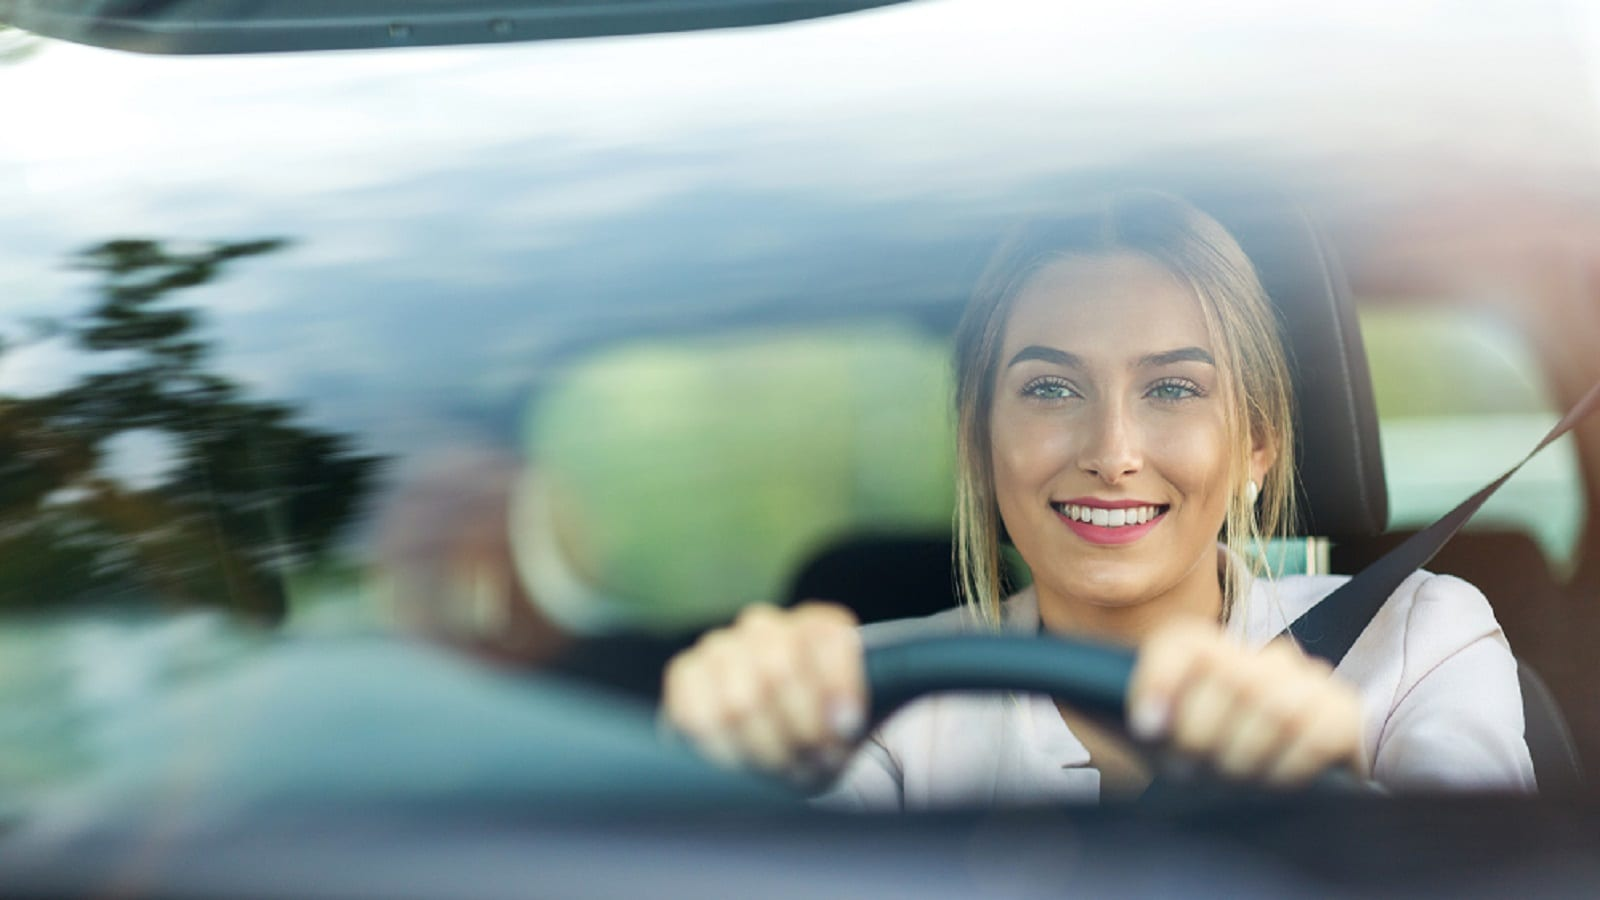 Smiling Female Driver Stock Photo